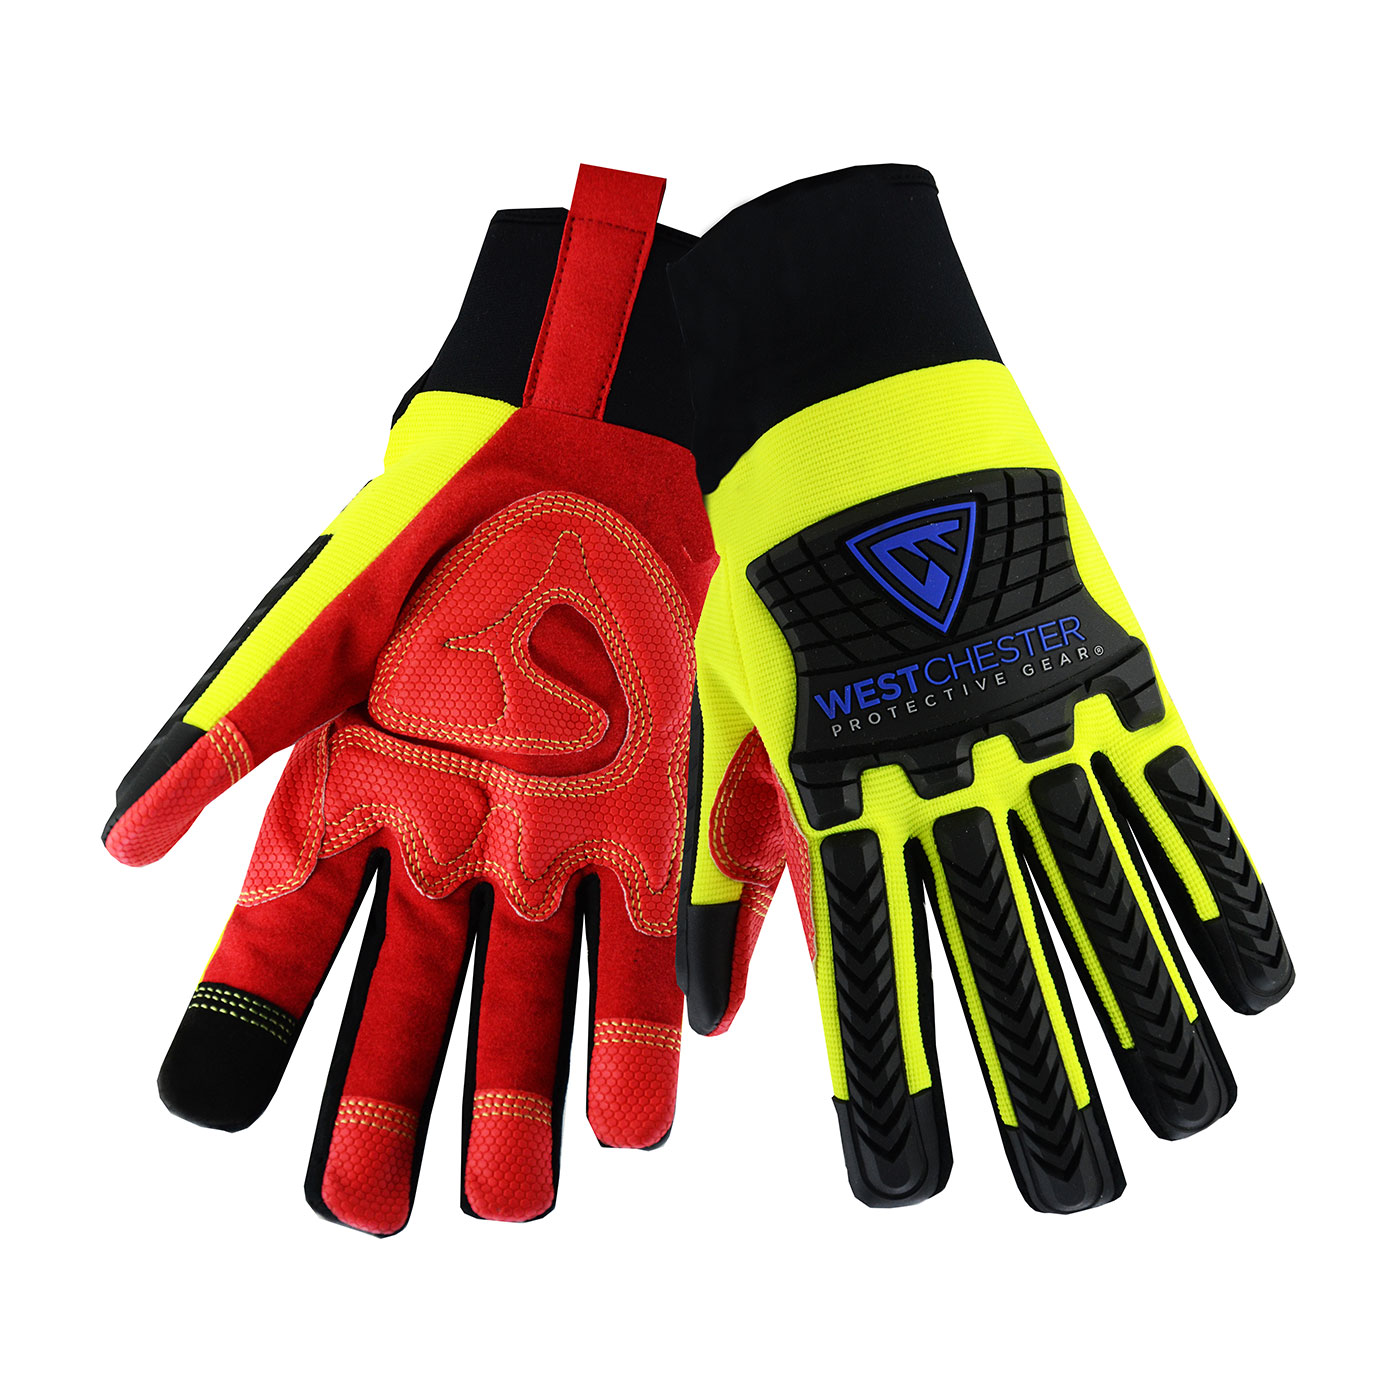 87811 PIP® West Chester R2 Safety Rigger Insulated Reinforced Comfort Gloves